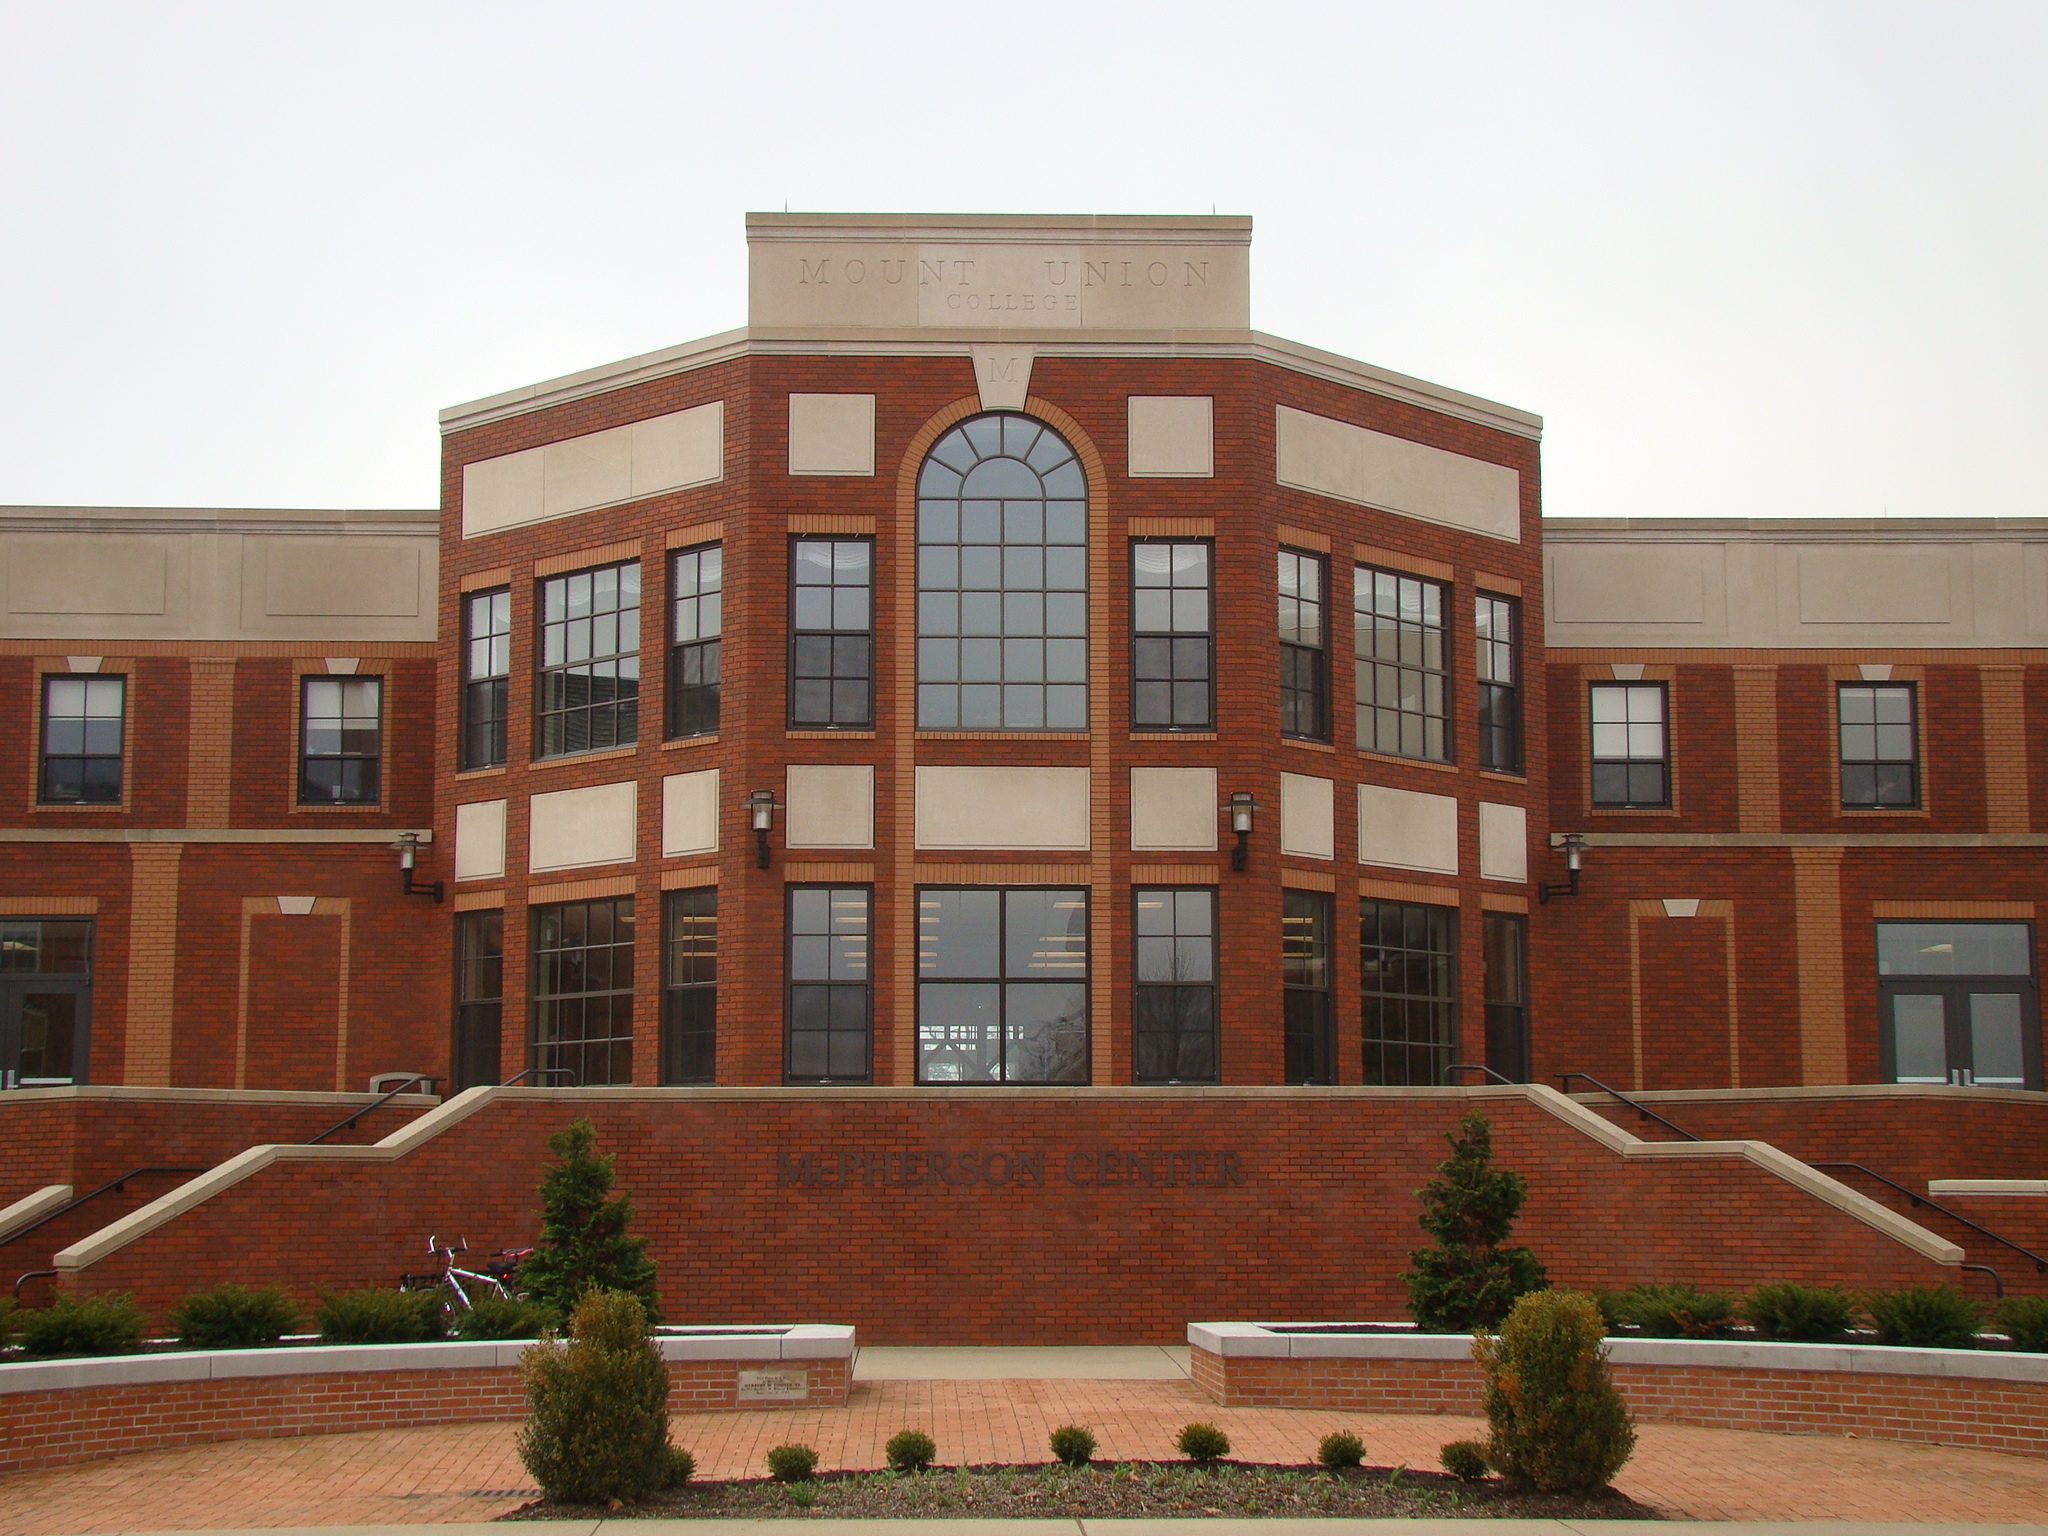 McPherson Center for Human Performance